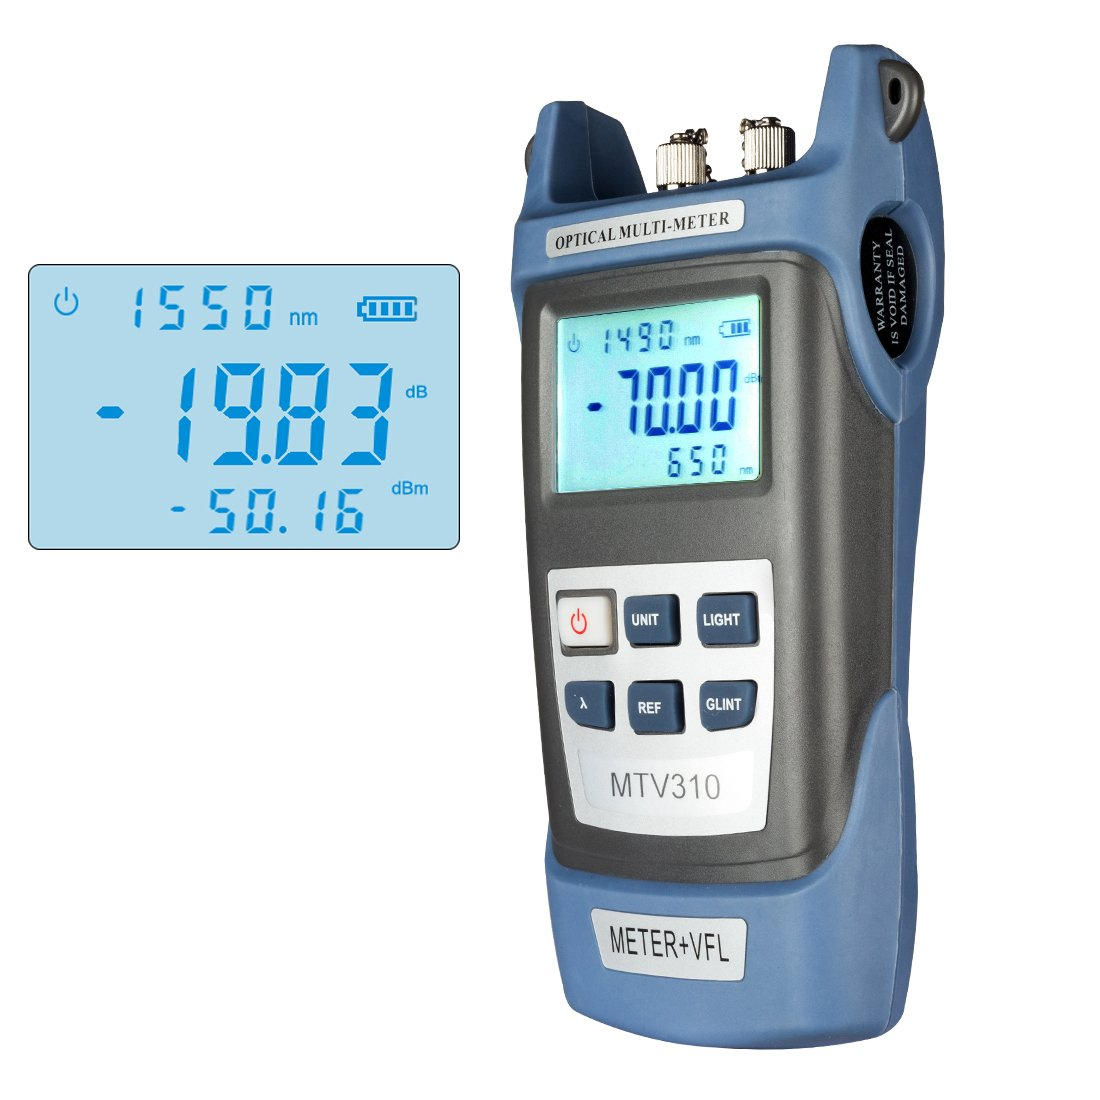 bfc10be716d uxcell Fiber Optical Power Meter with Light Source SC FC ST Connector Optic  Test Equipment for CCTV CATV Communication Engineering -70dBm to 3dBm  ...